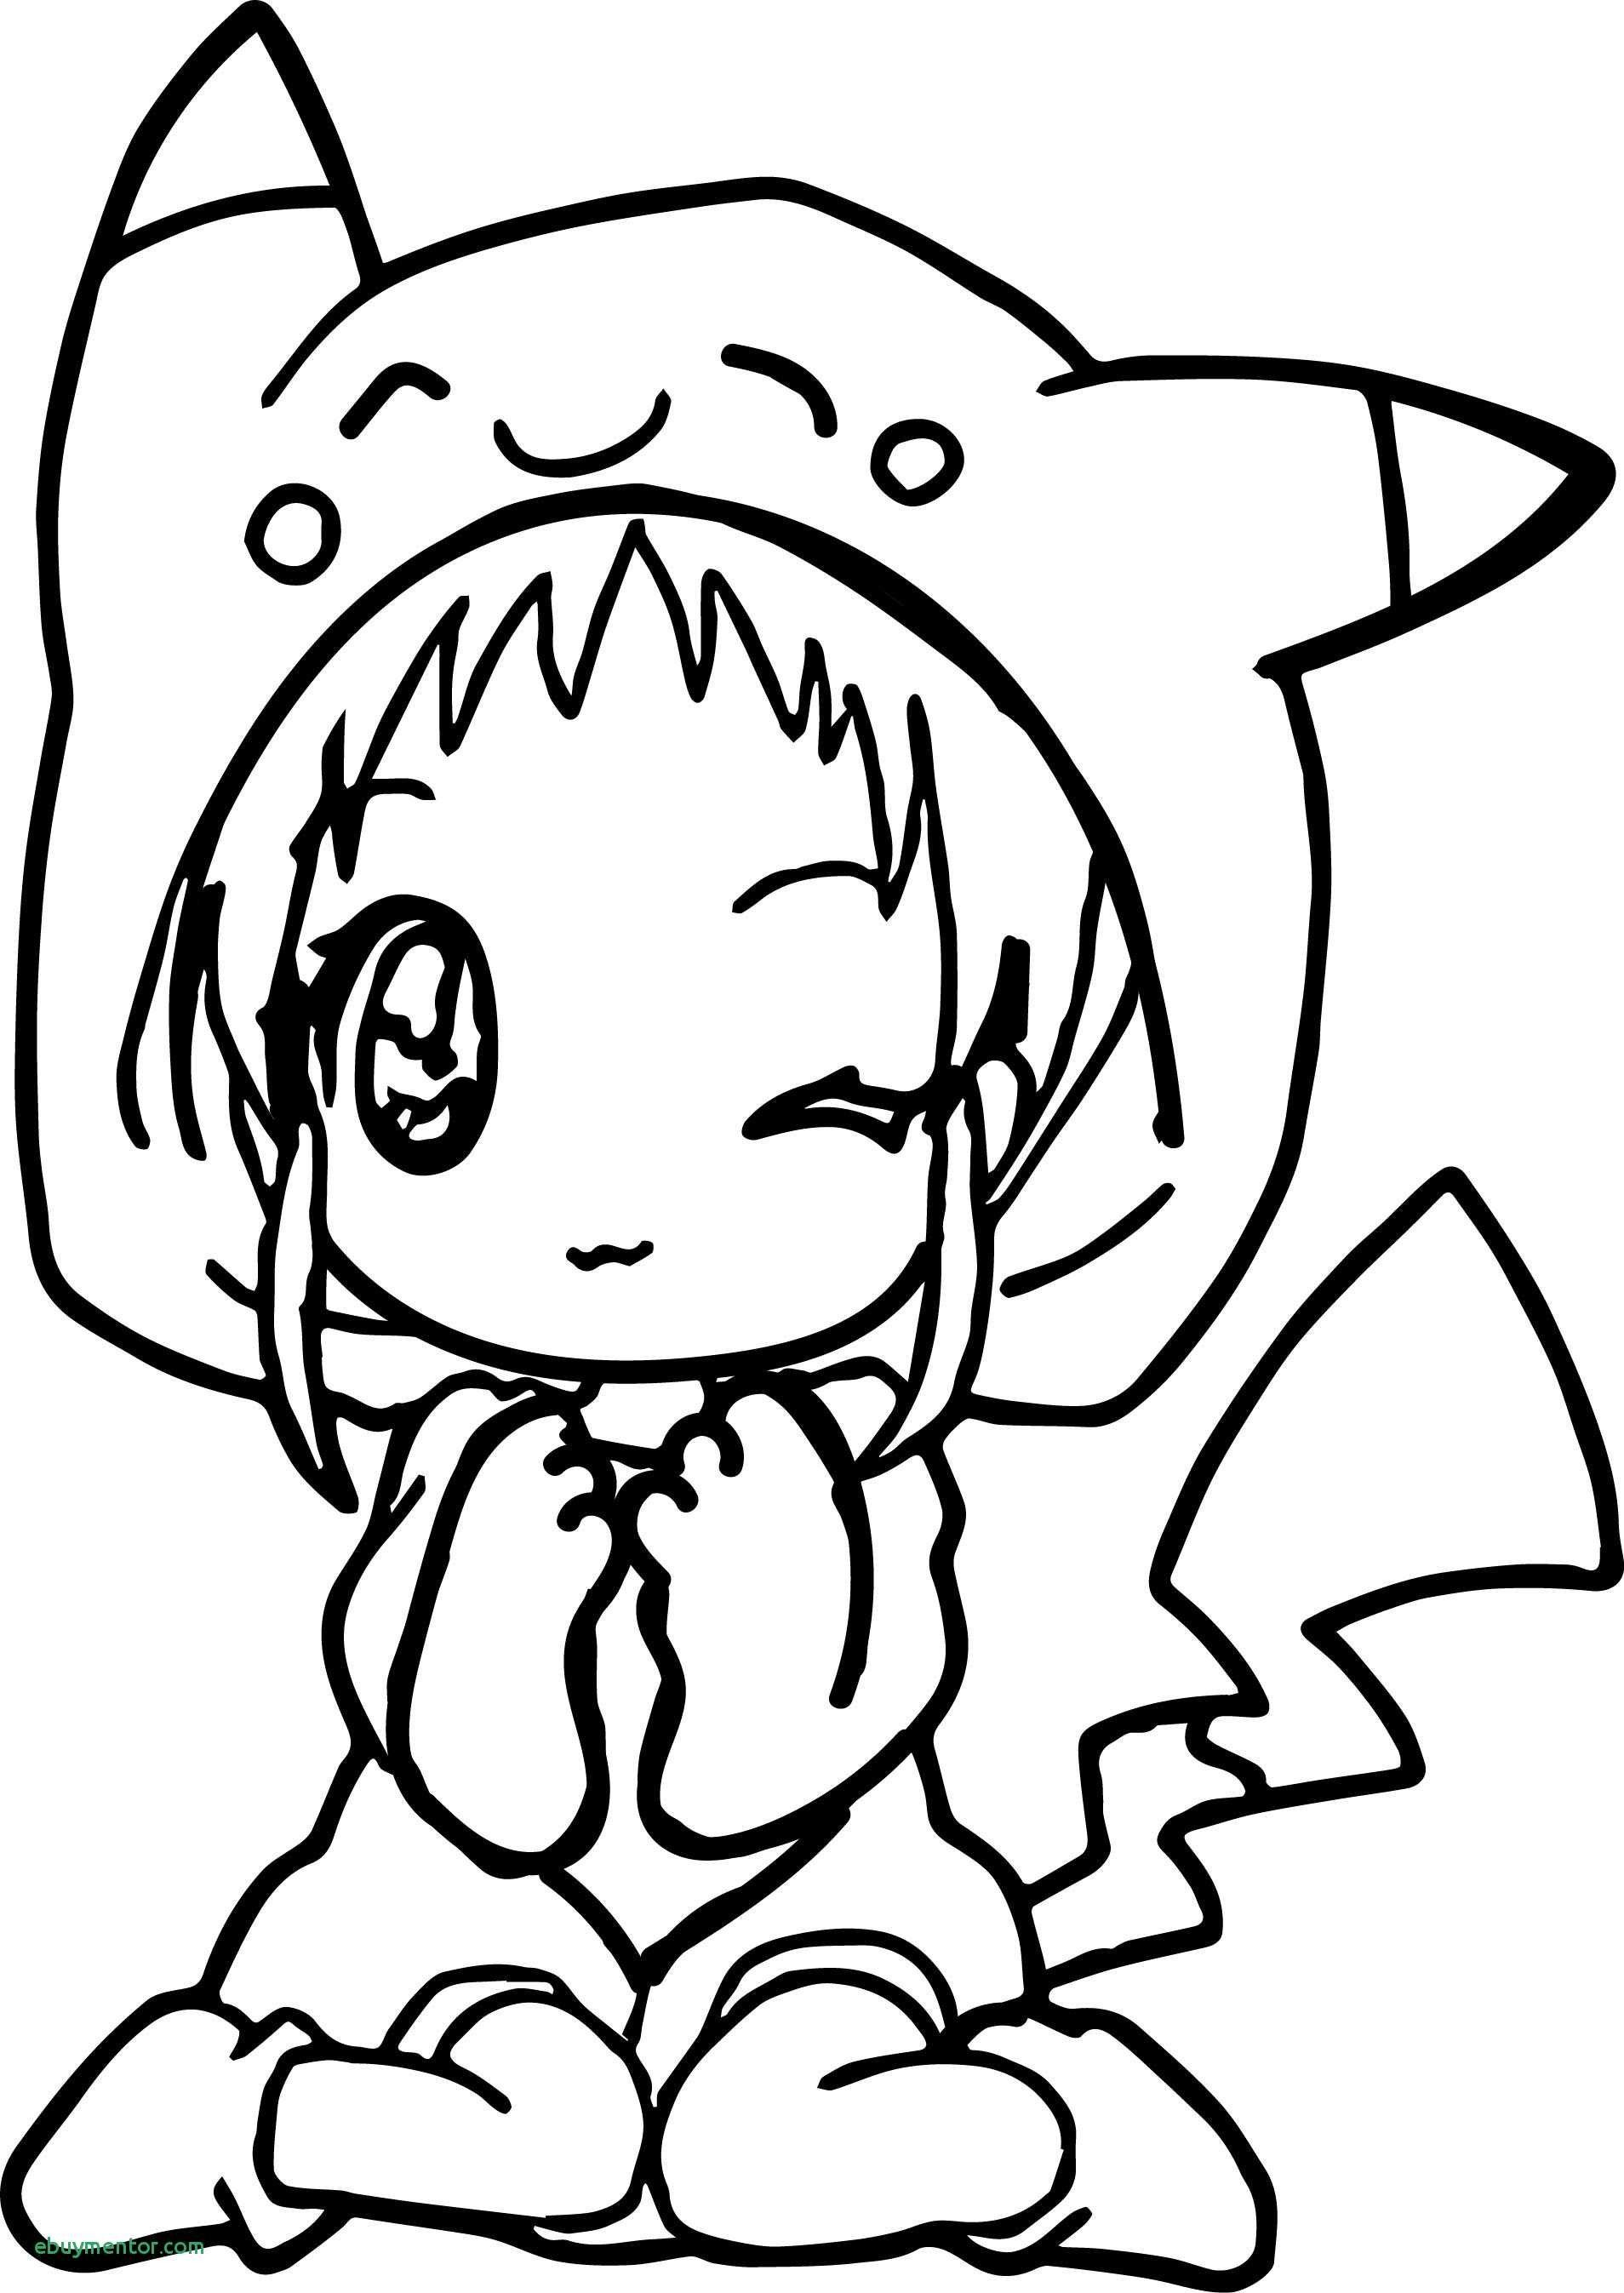 Chibi pikachu coloring pages u through the thousands of photographs